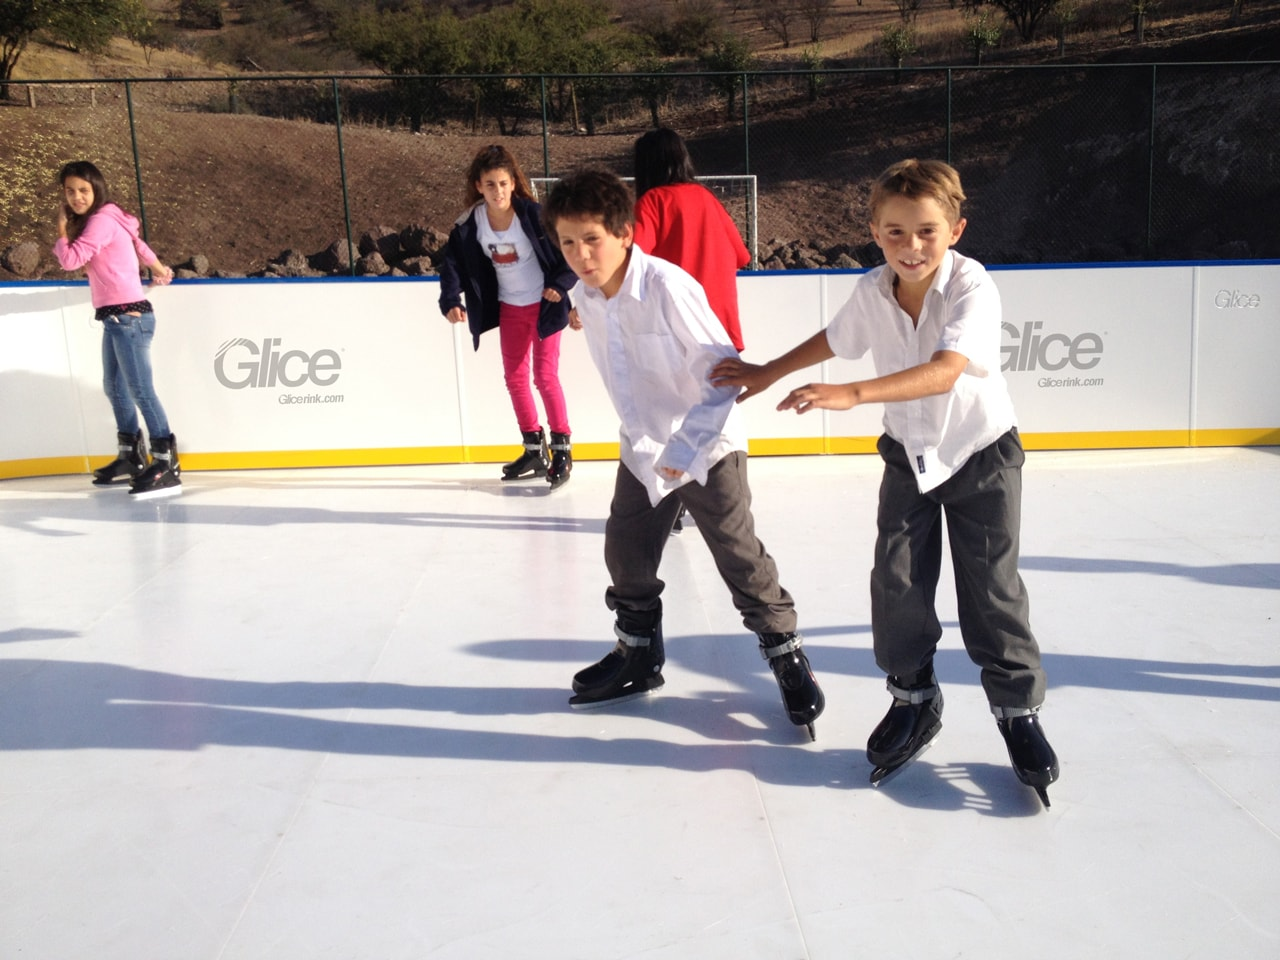 synthetic Glice ice rink - Chile